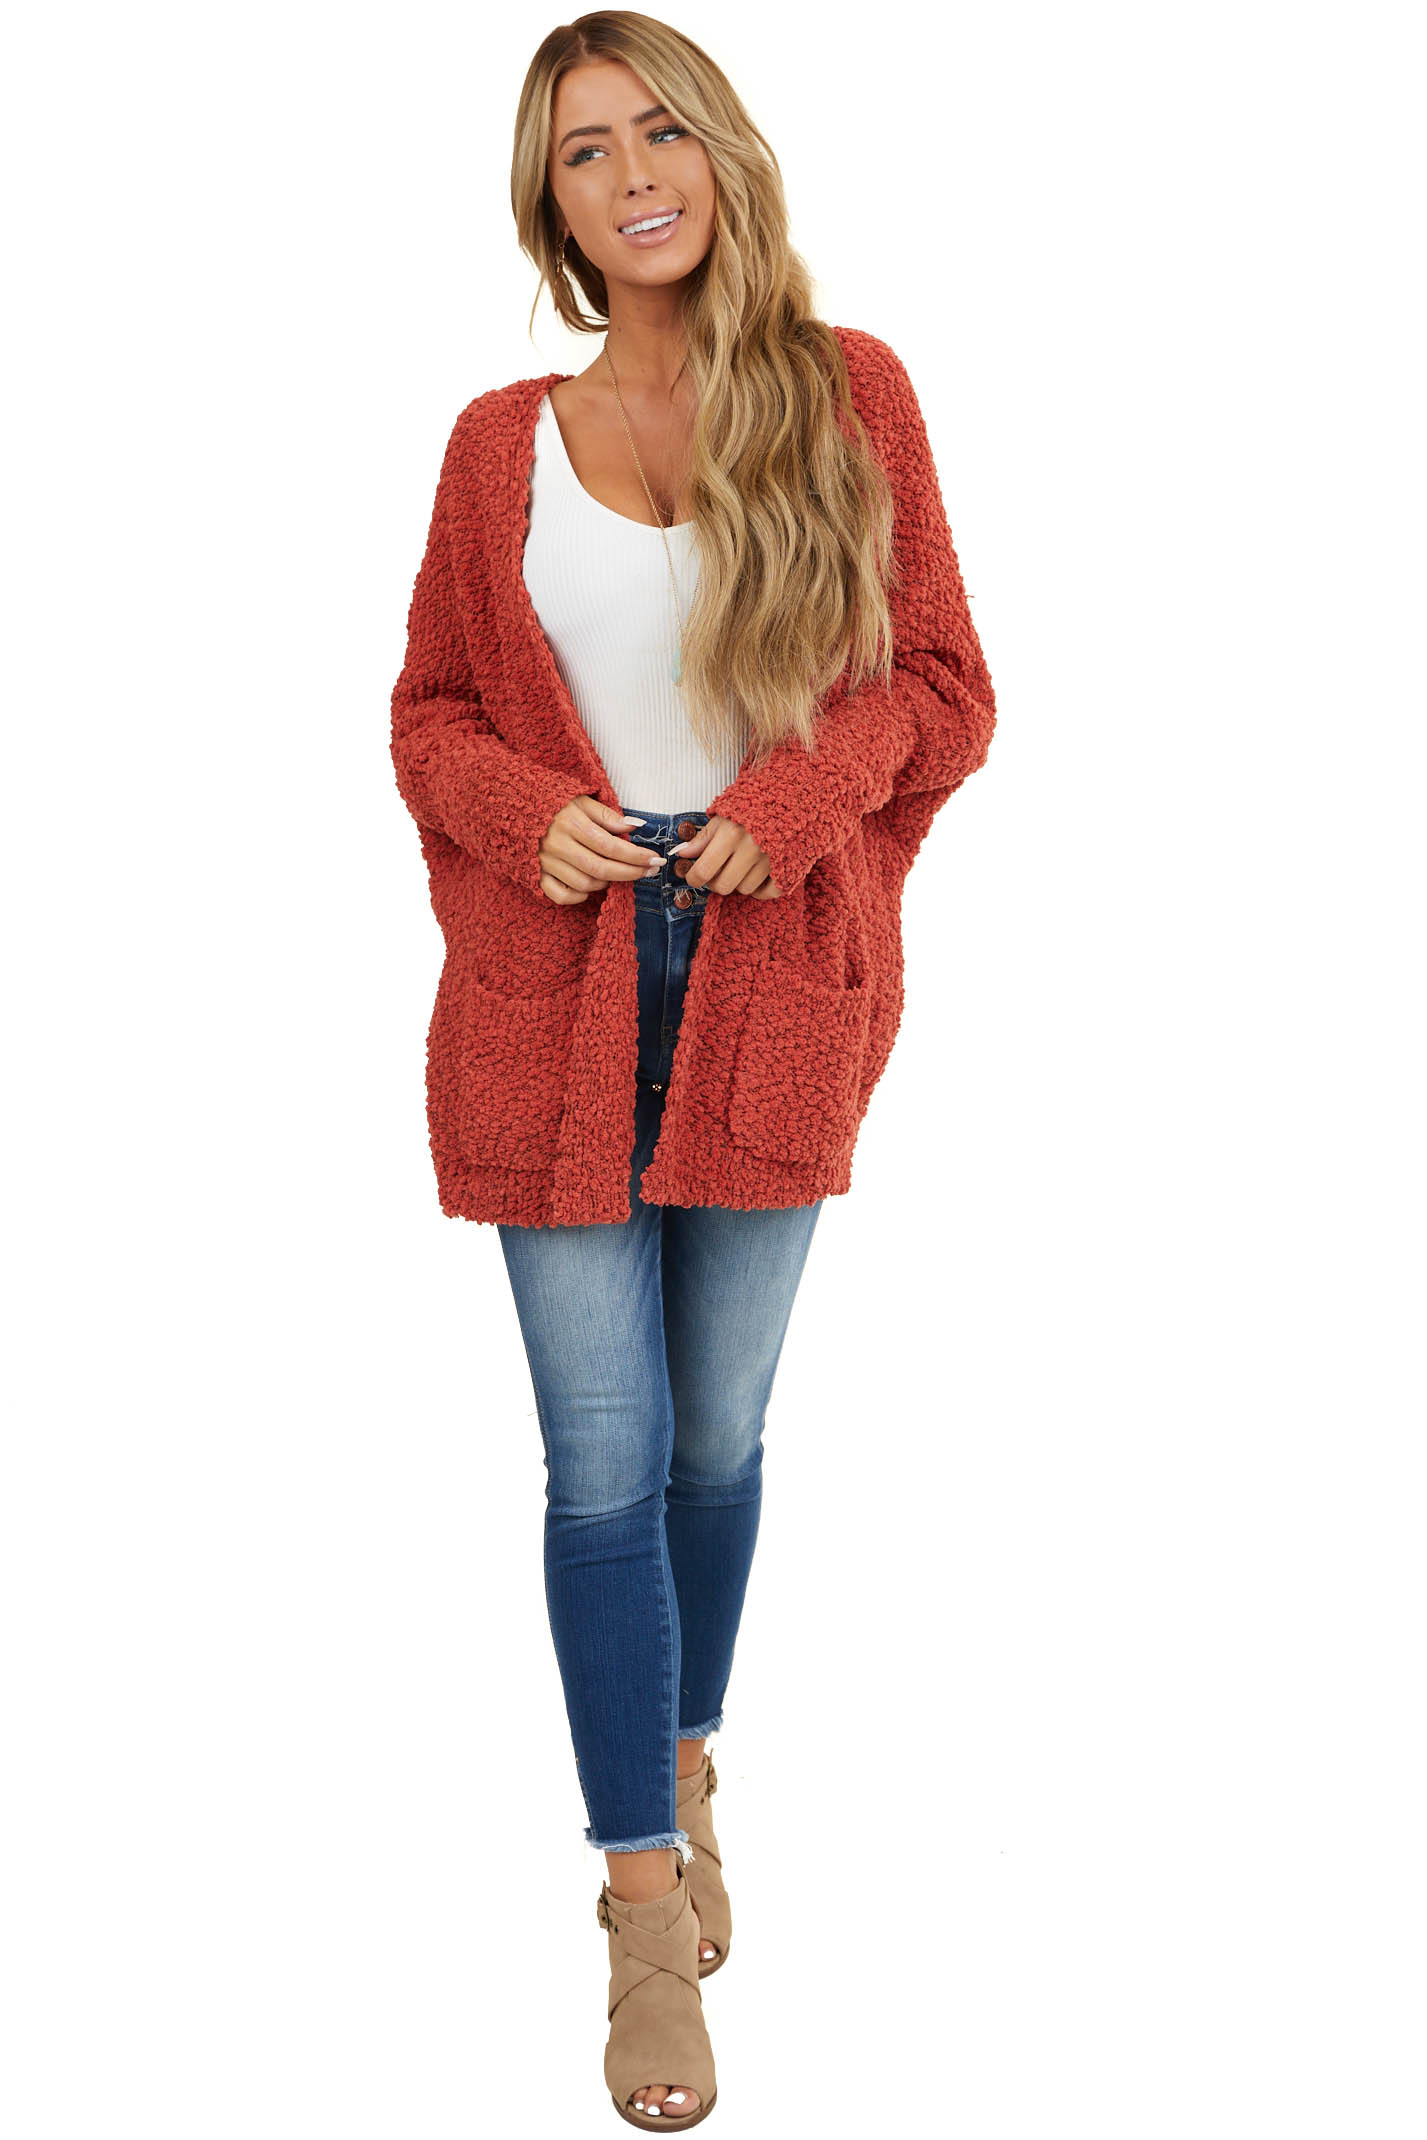 Brick Red Thick Knit Cardigan with Side Pockets